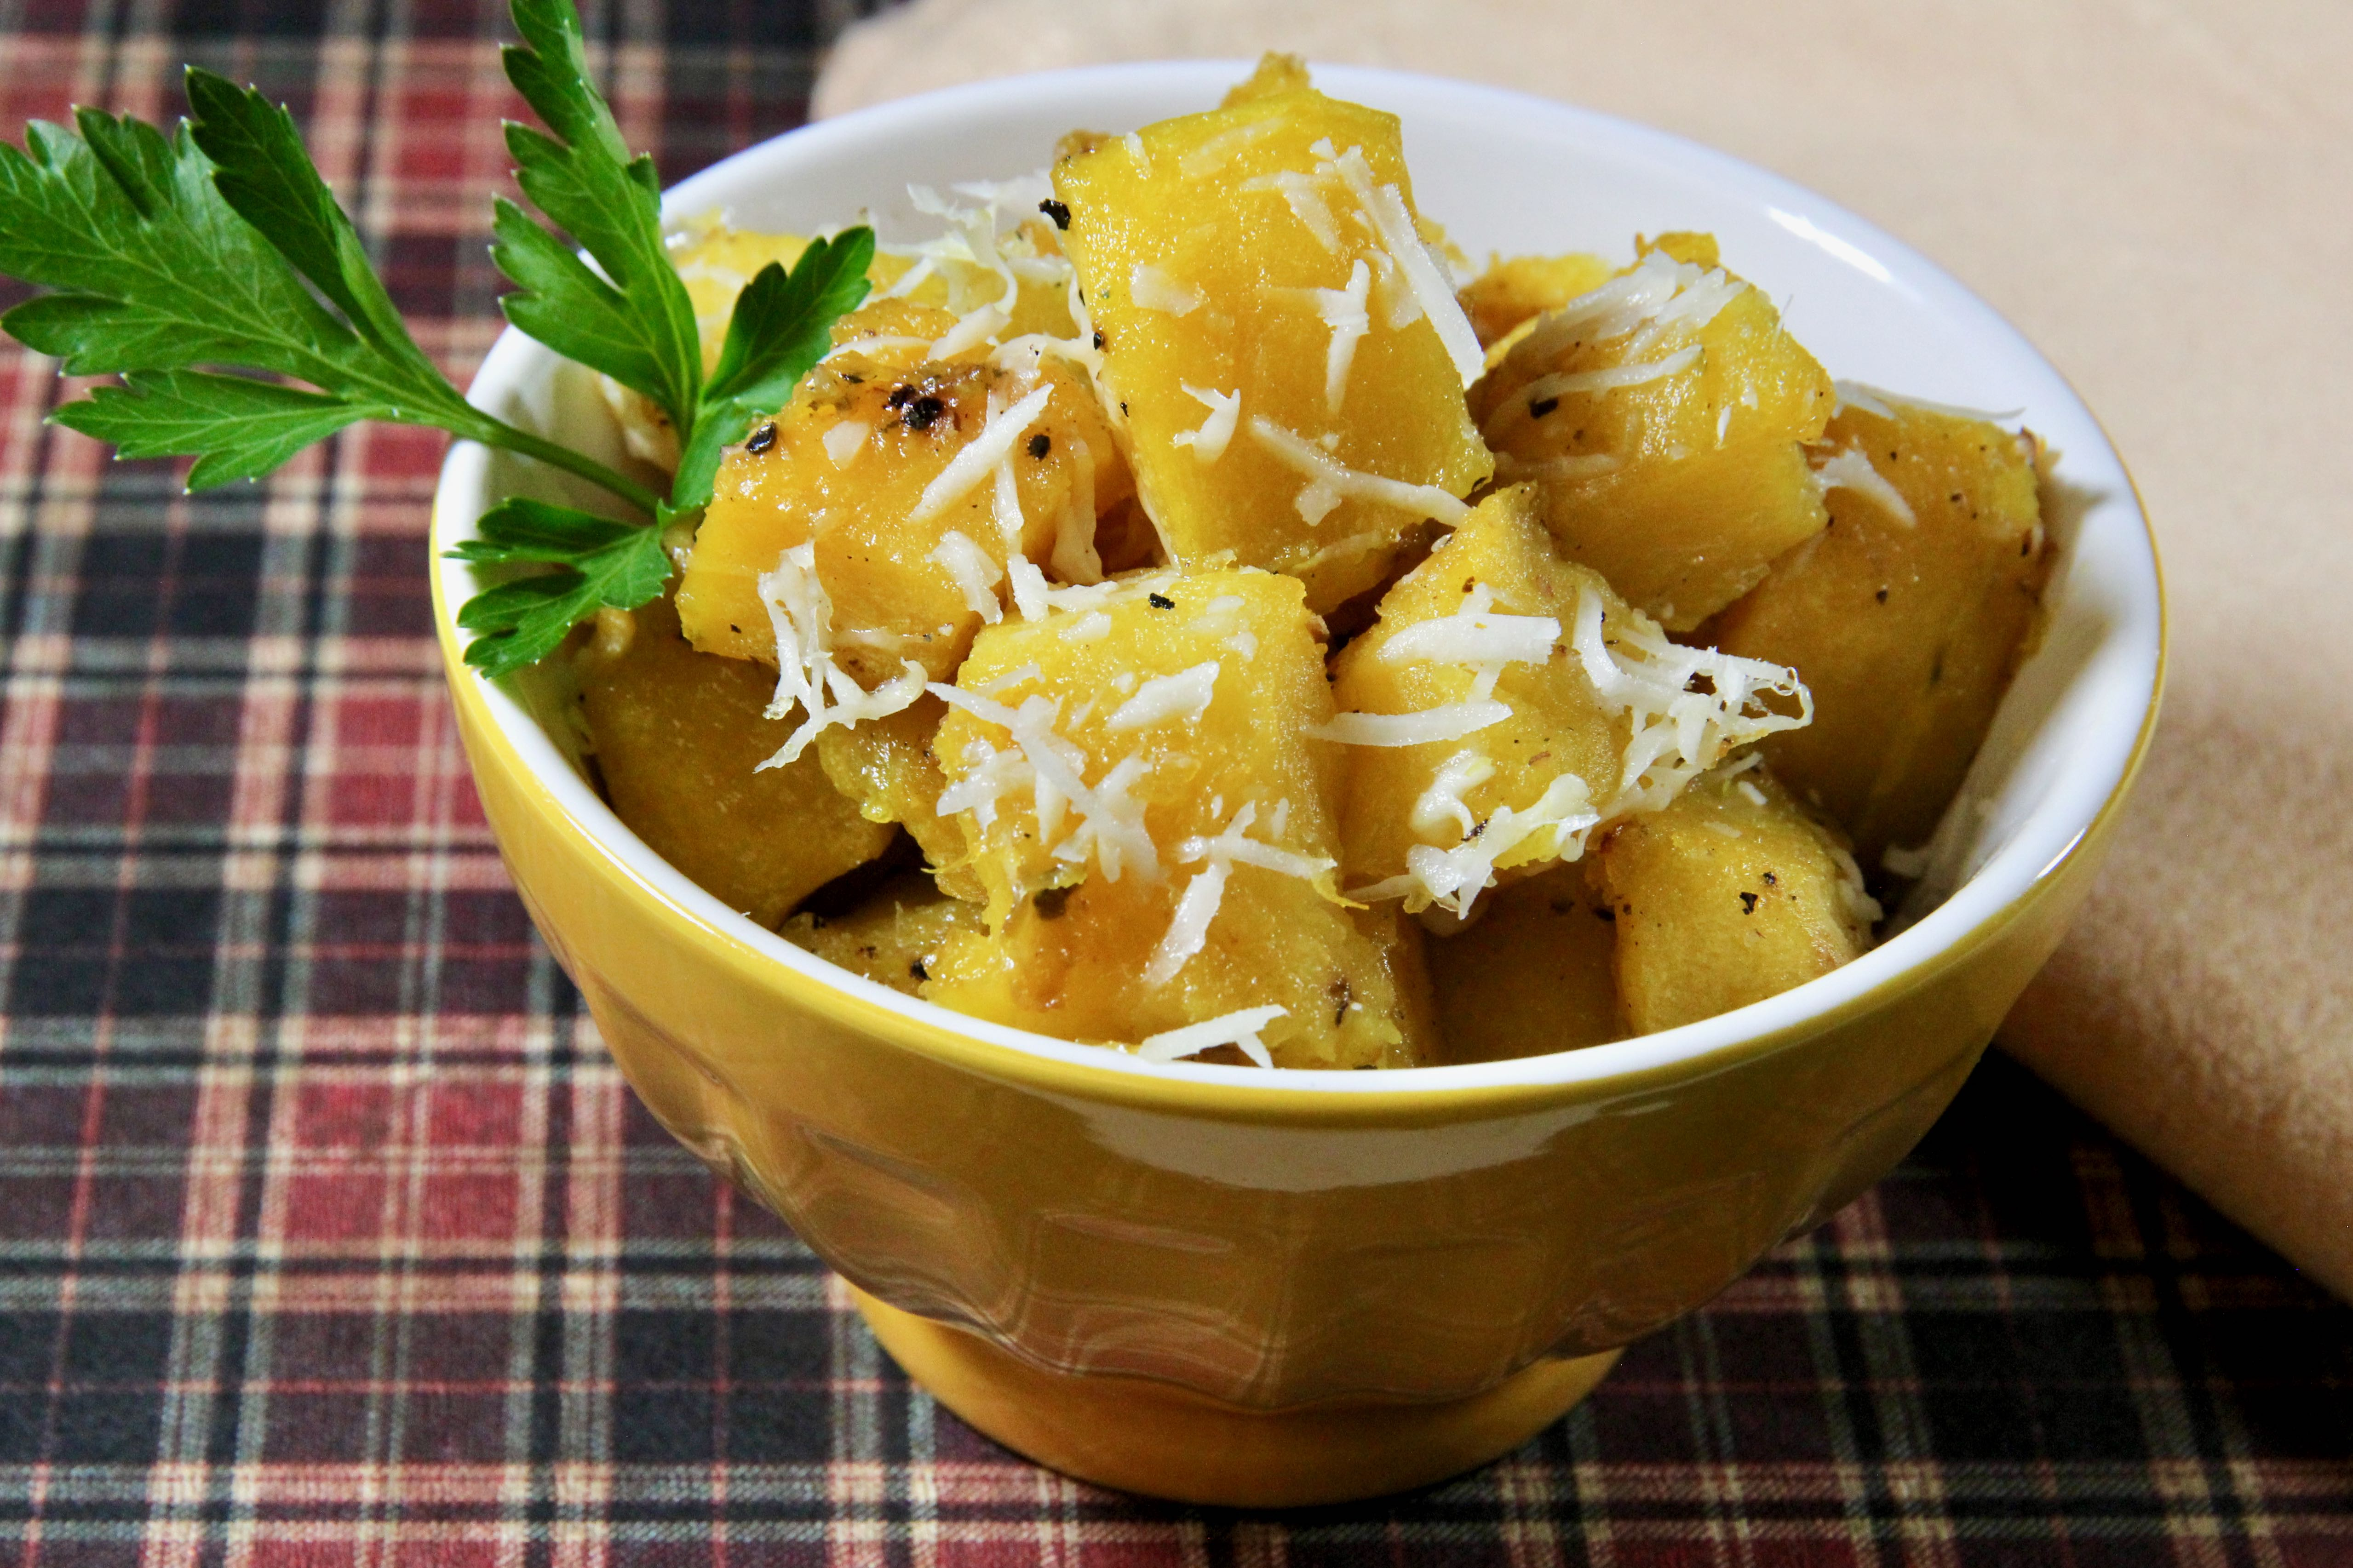 Roasted Acorn Squash with Parmesan